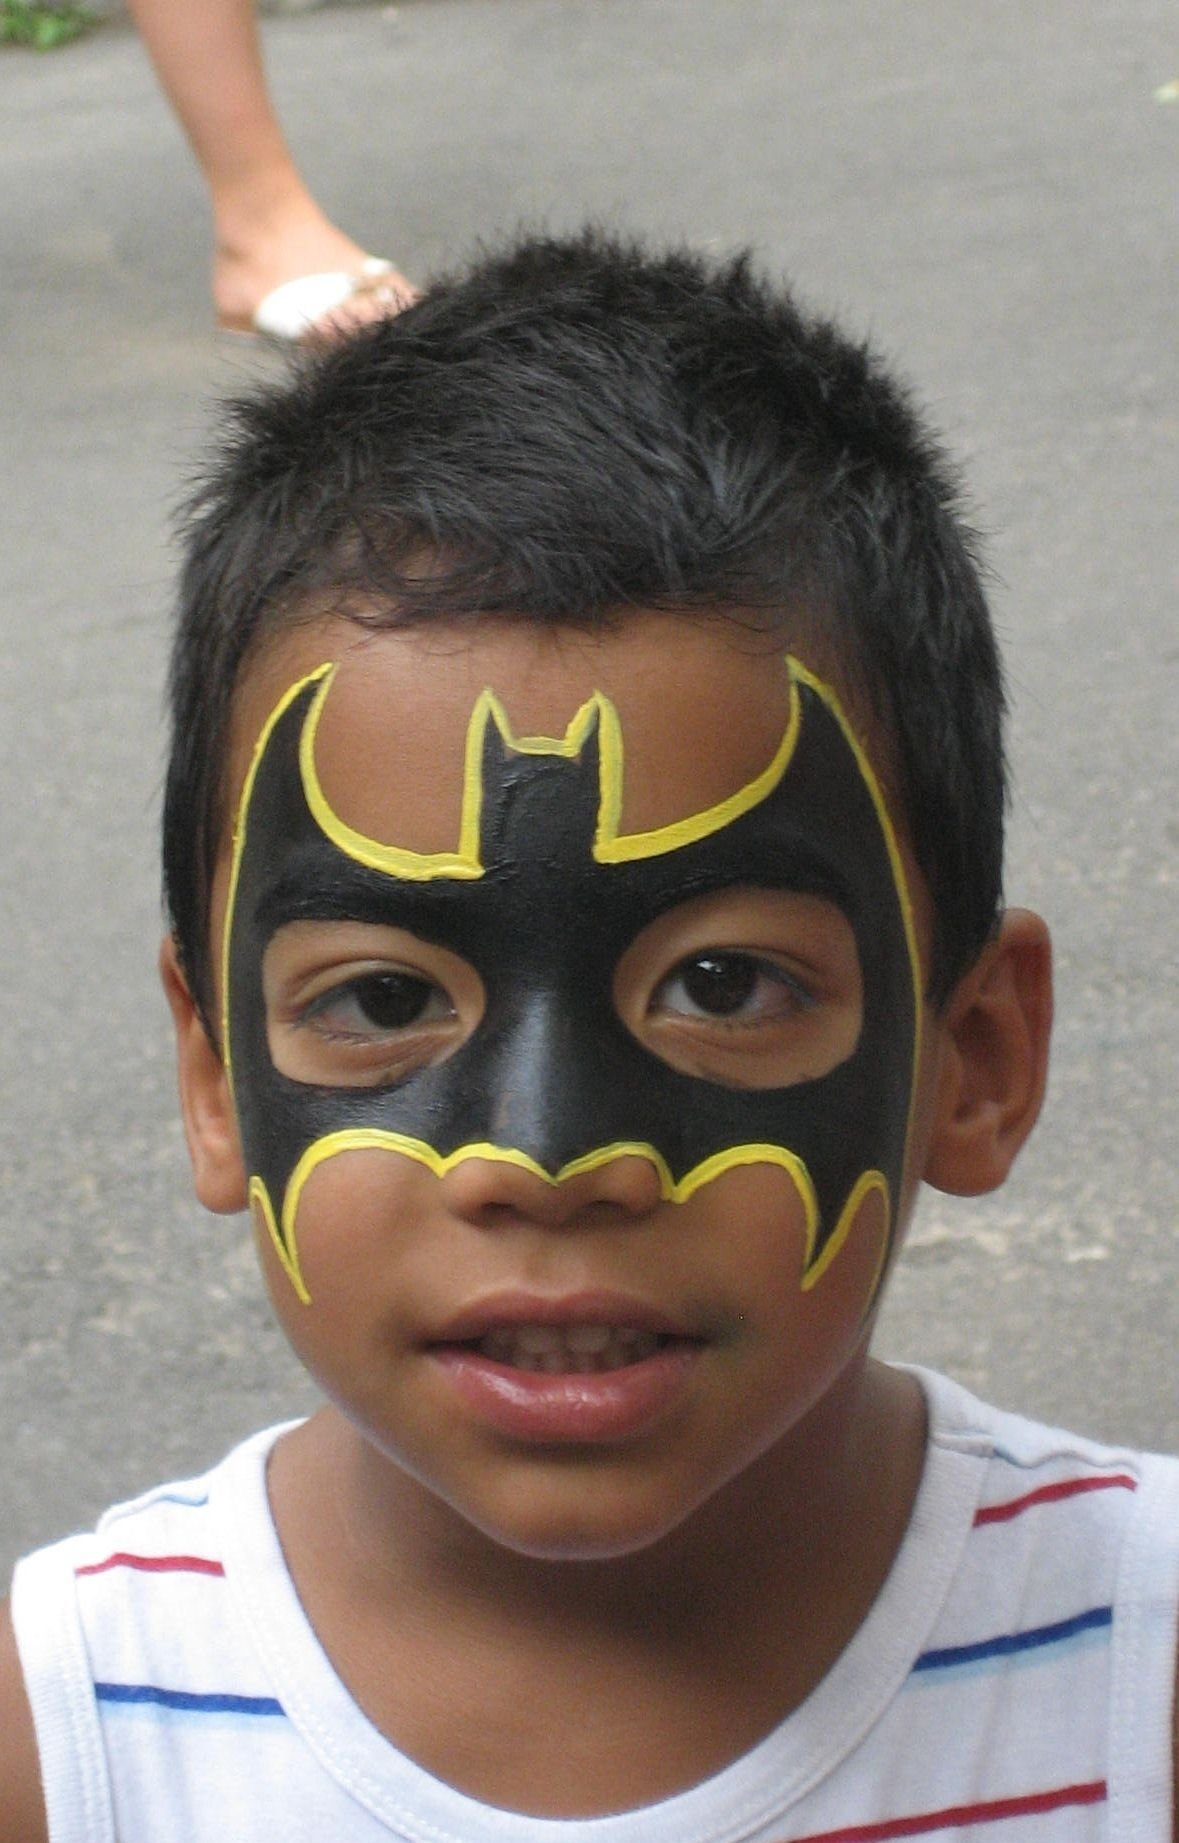 10 Cute Face Painting Ideas For Kids Step By Step frozen pacepaint designs hero face painting www 2